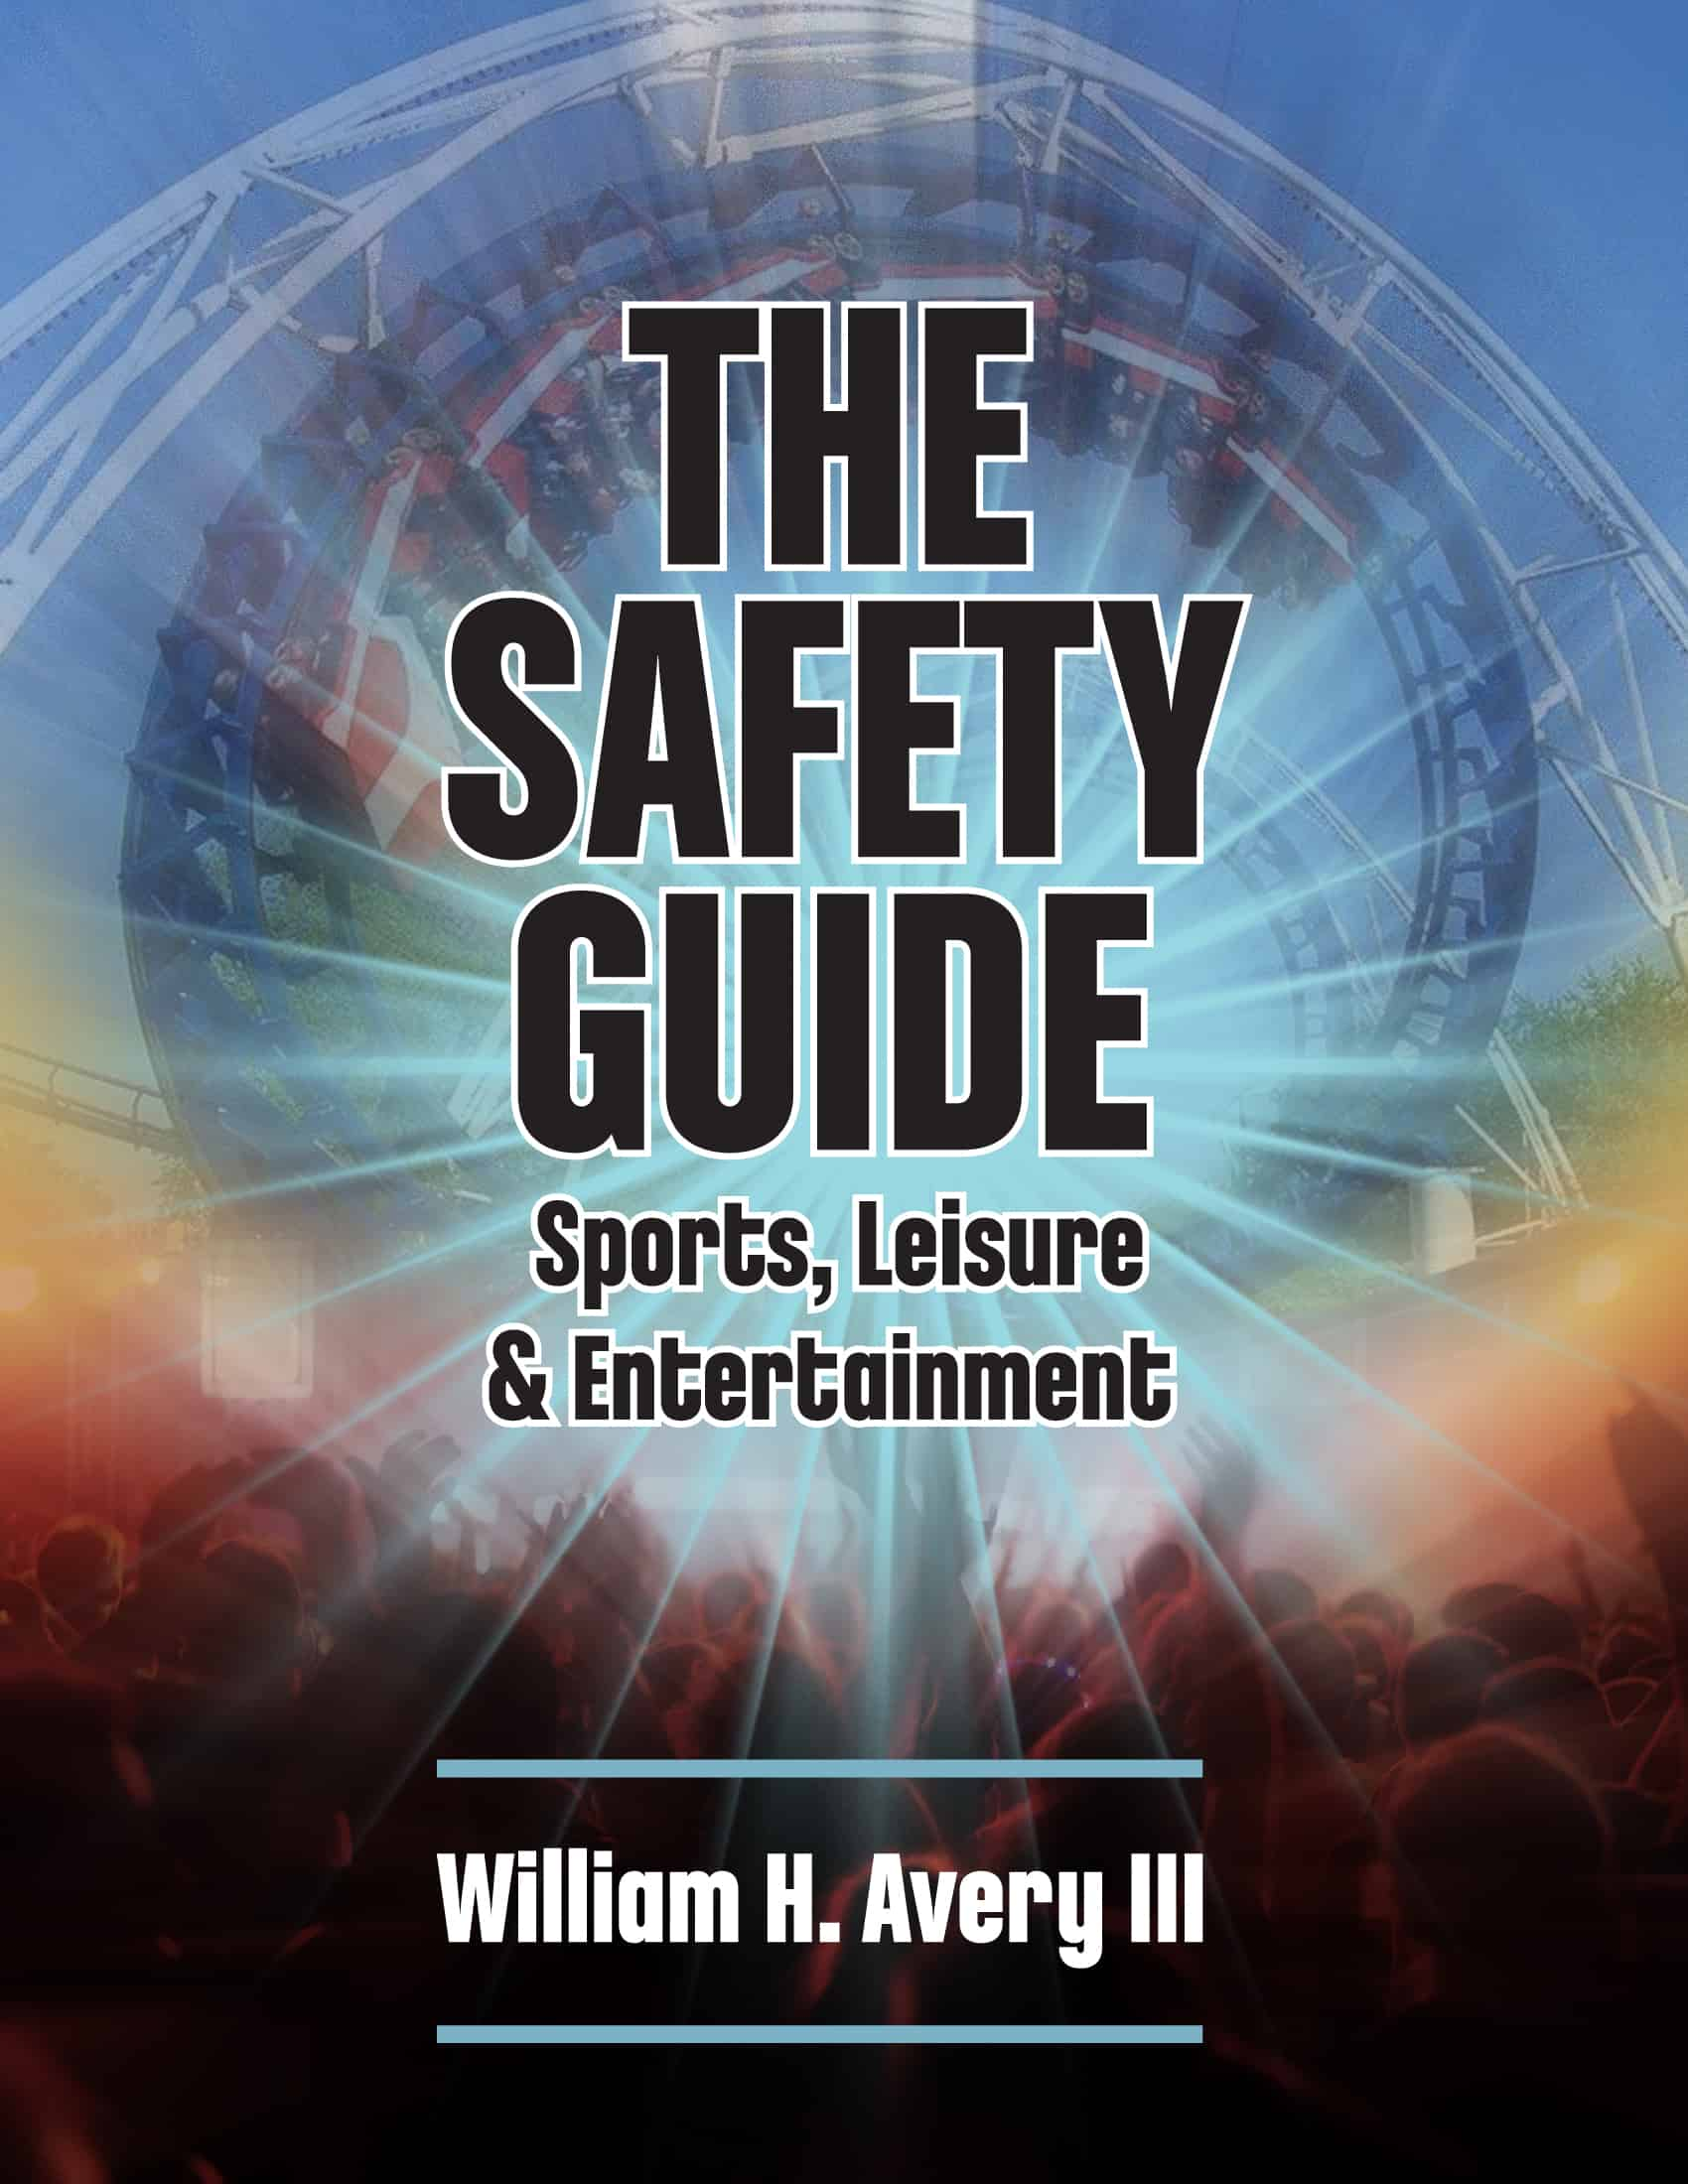 The Event Safety Guide: Sports, Leisure & Entertainment